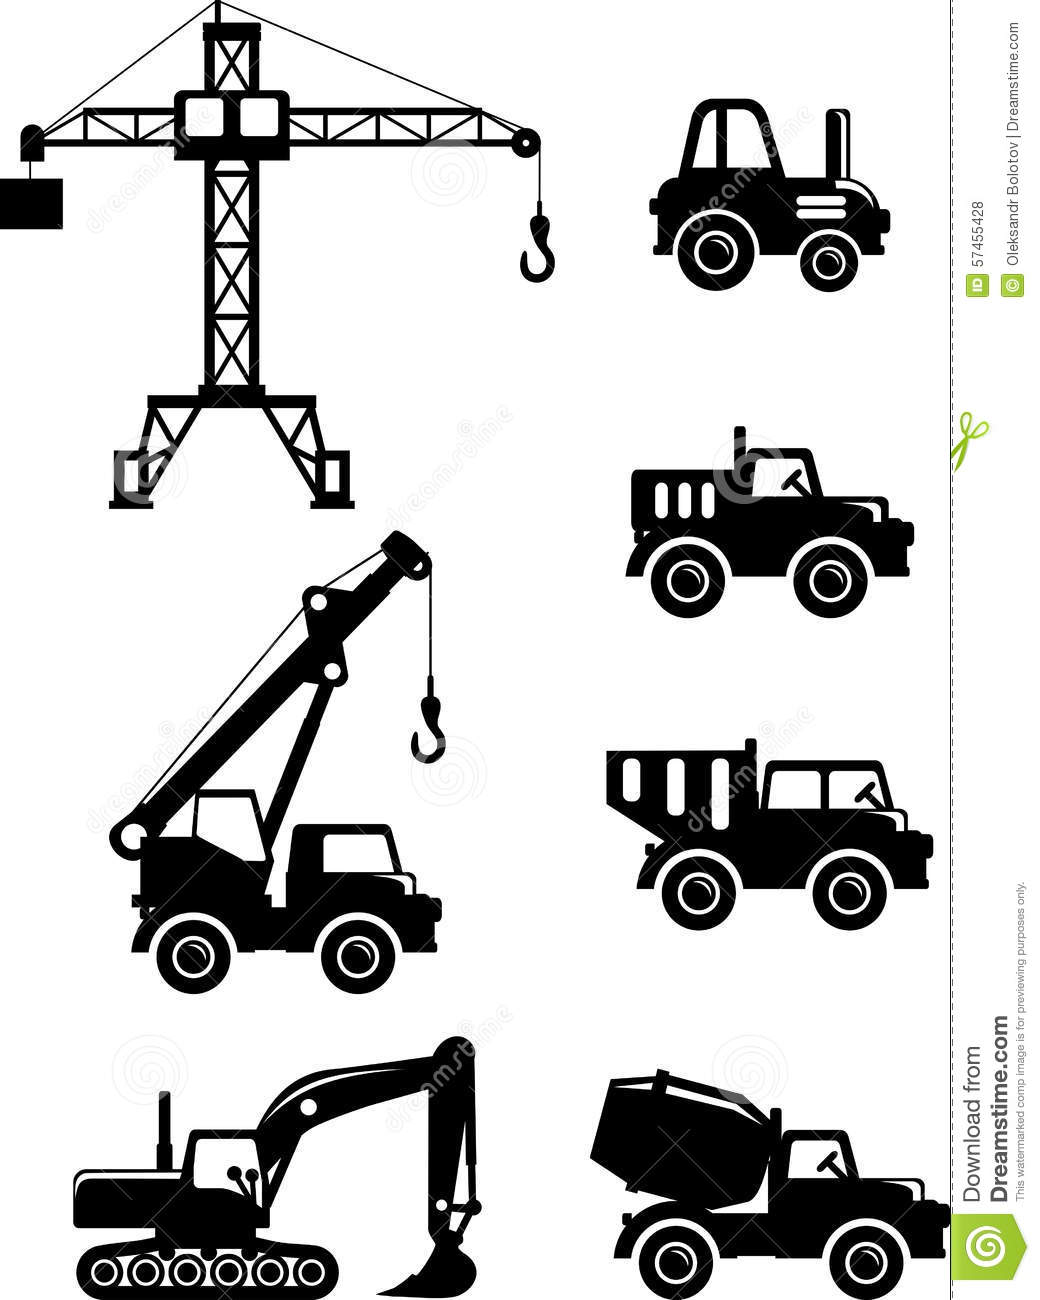 Heavy Construction Machines Illustrations Cartoon Vector